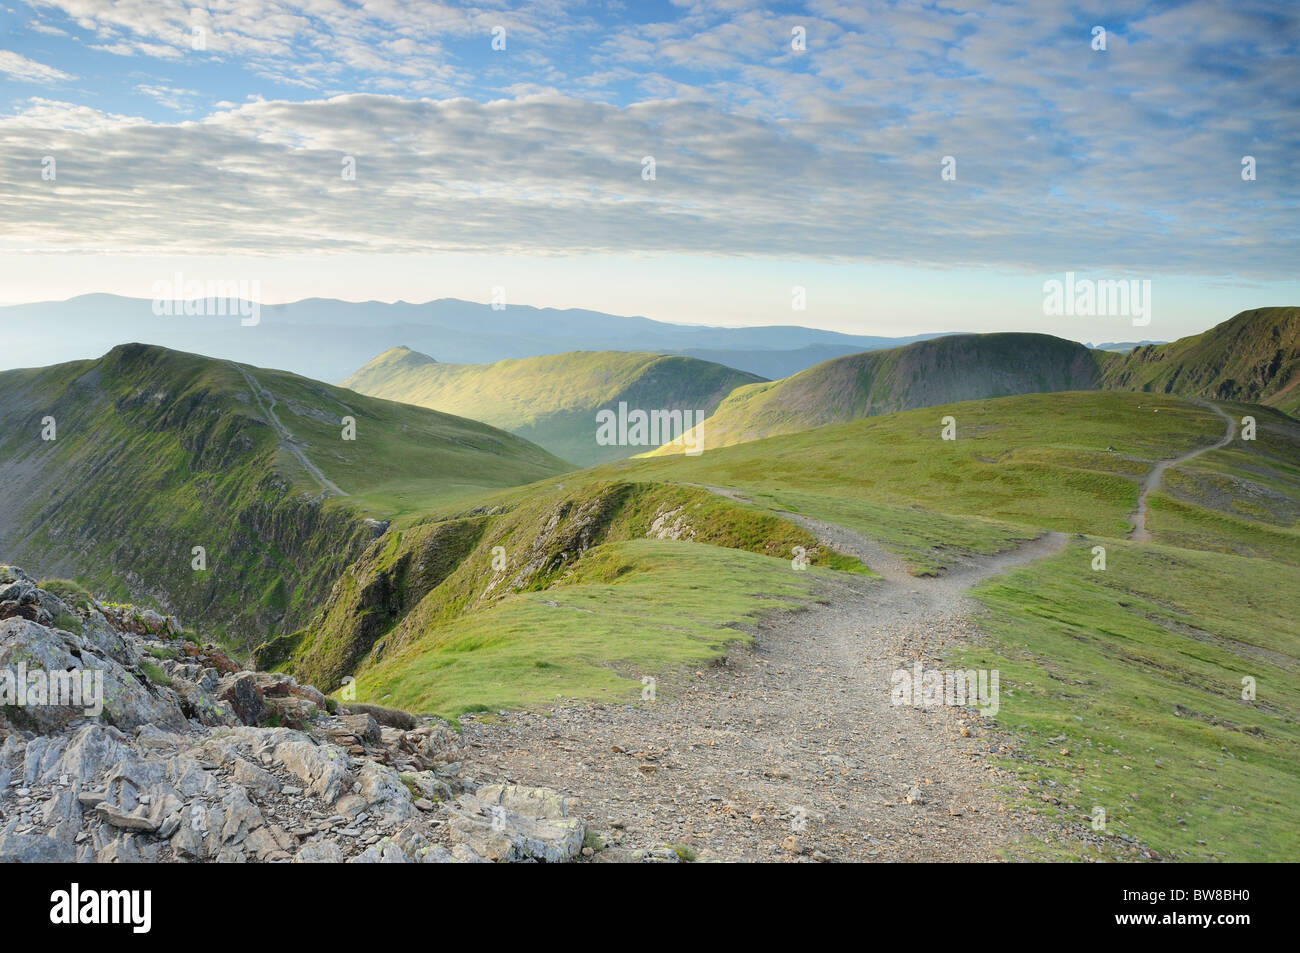 View from the summit of Hopegill Head, looking back along the footpath towards Causey Pike in the English Lake District Stock Photo